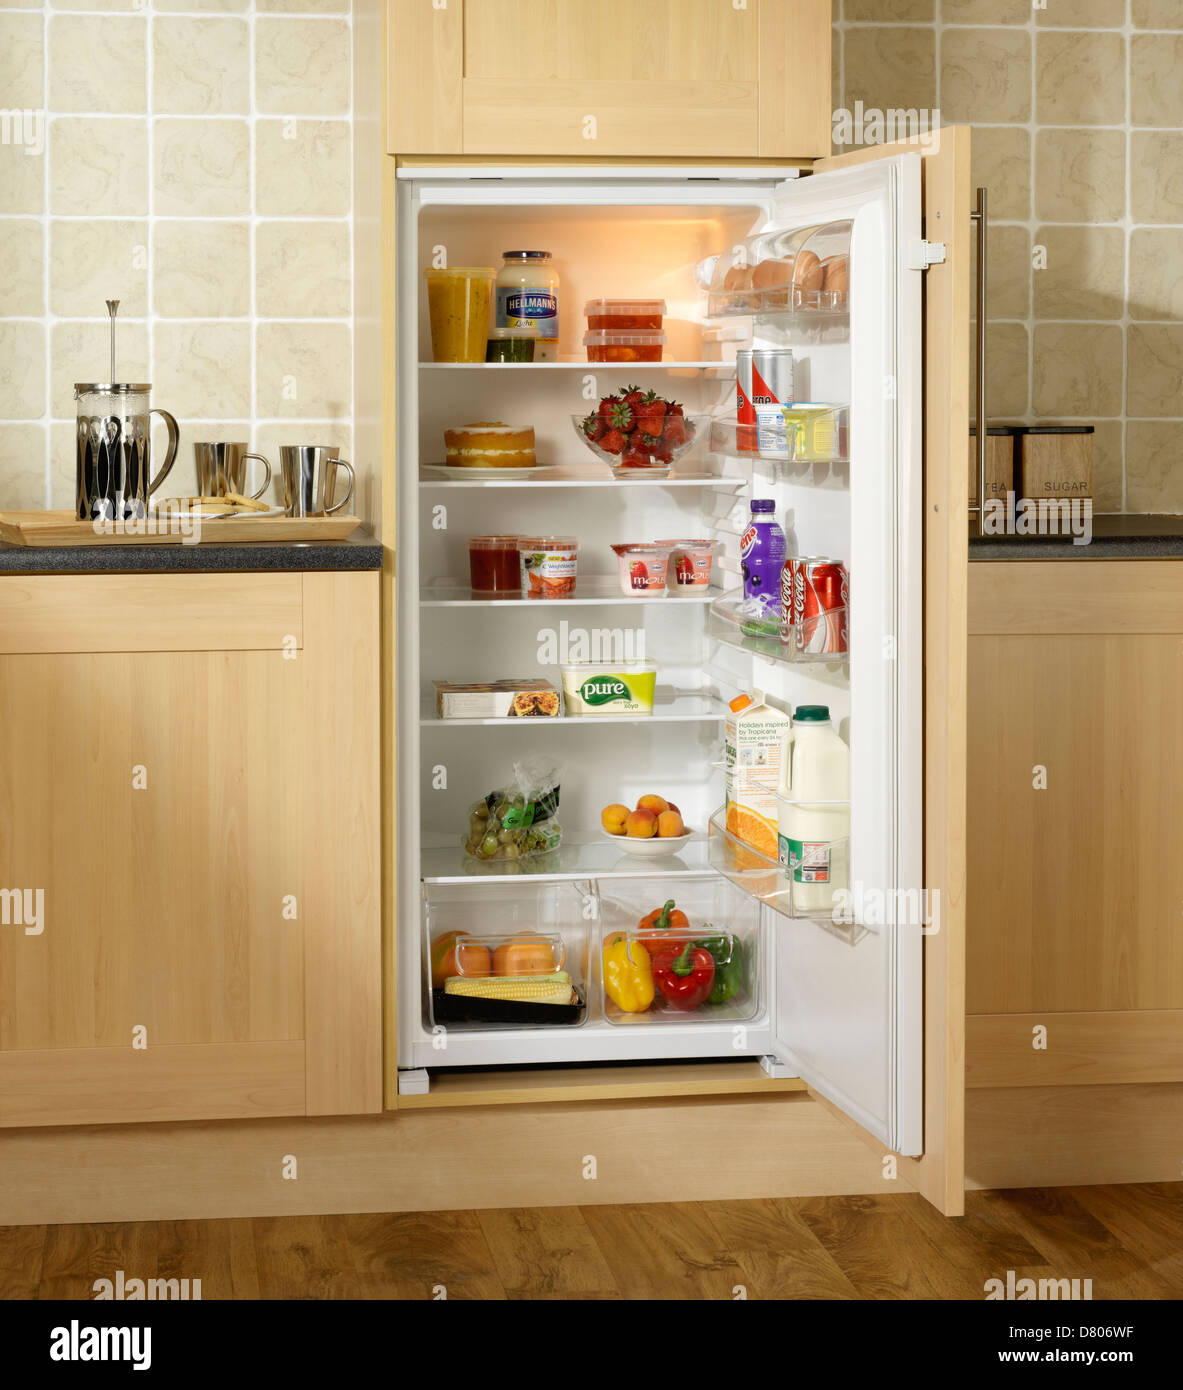 refrigerator for small kitchen country lighting chilled food in a built fridge oak units